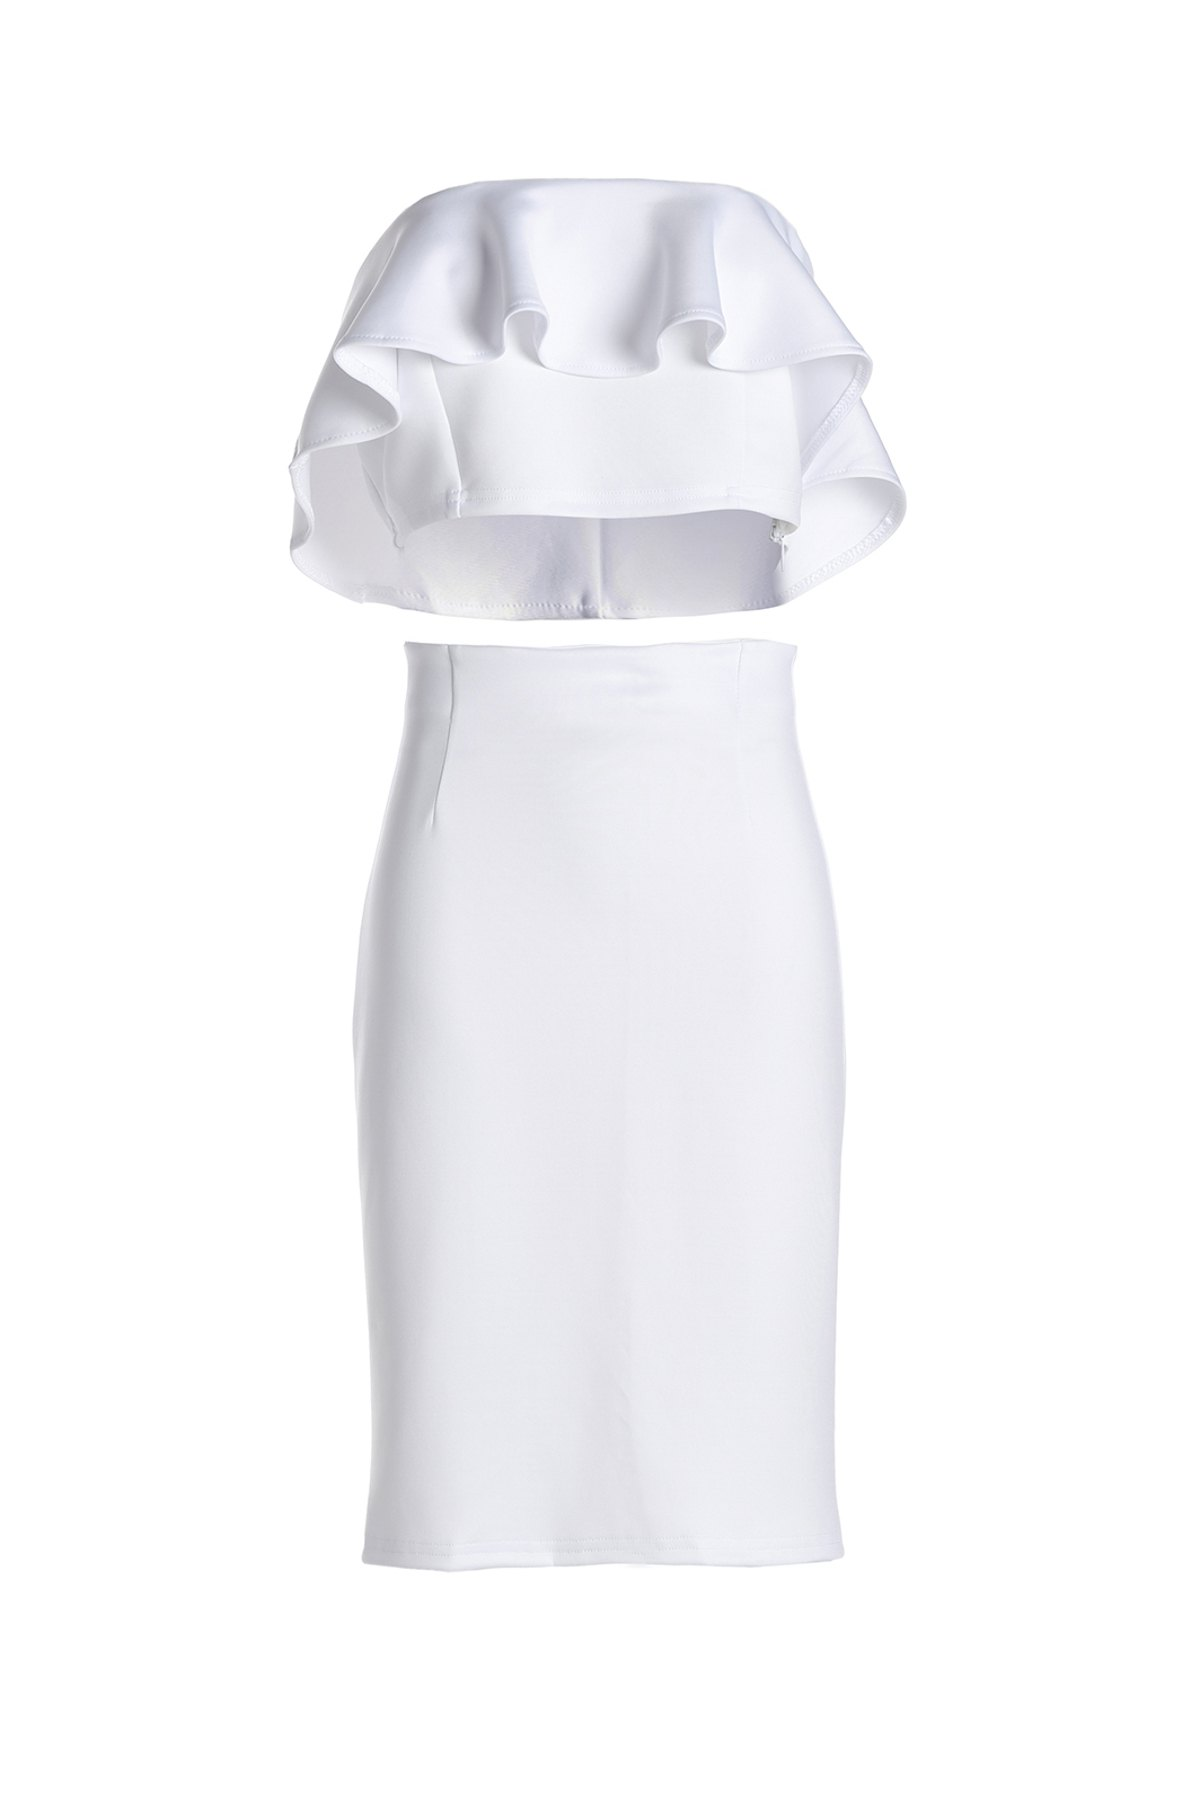 Ruffled Tube Top + High-Waisted Pencil Skirt Twinset - WHITE ONE SIZE(FIT SIZE XS TO M)